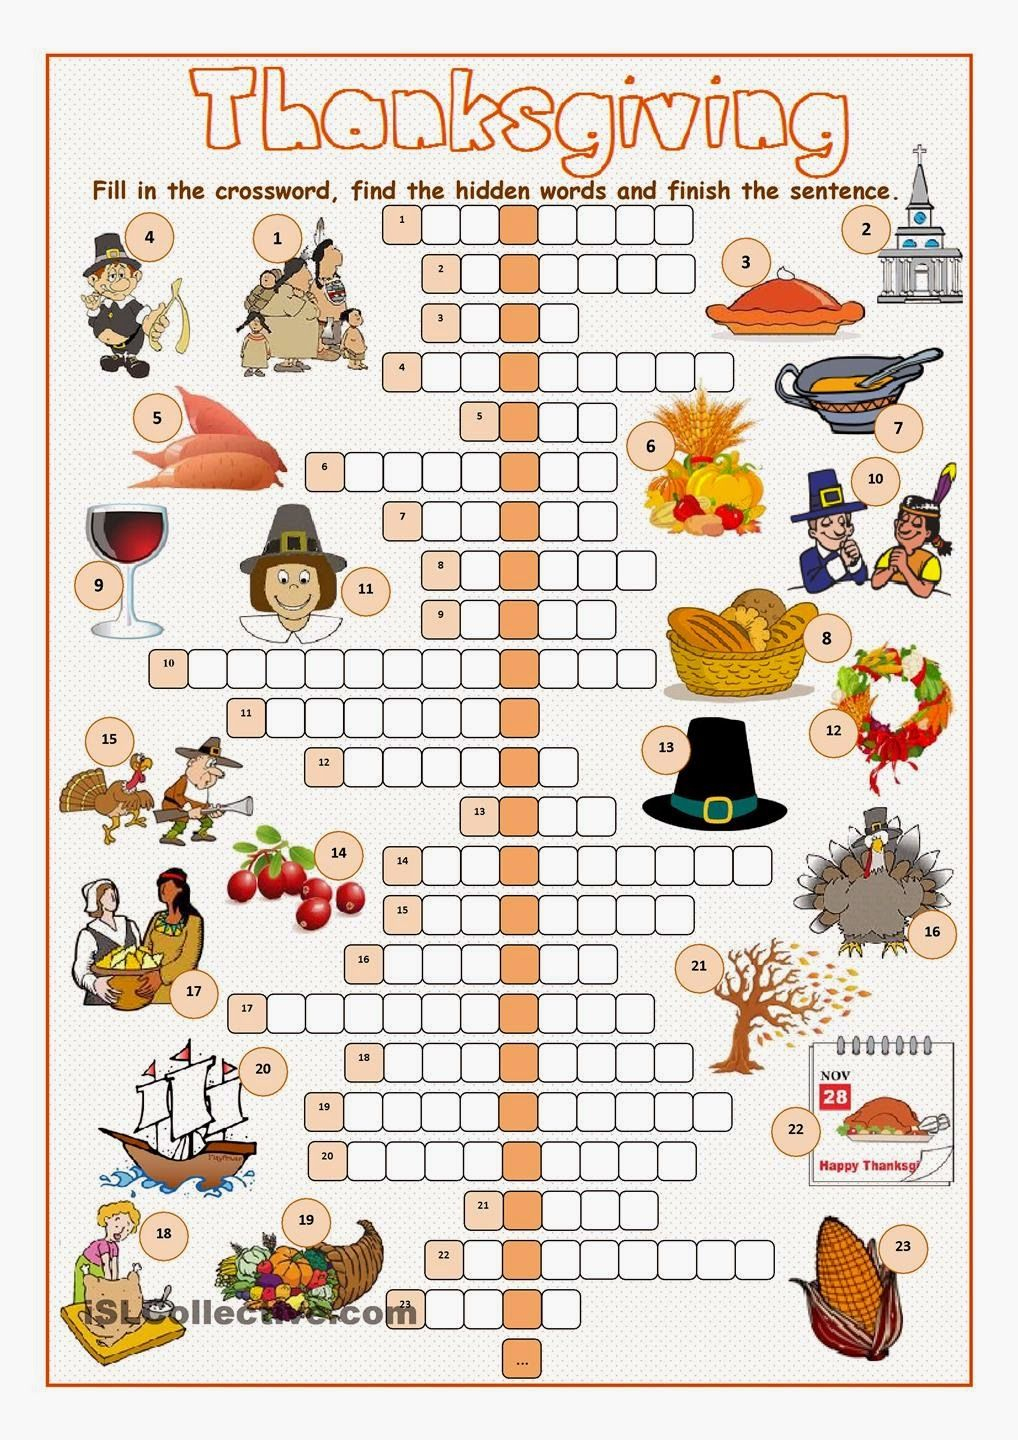 Free Printable Cards: Free Printable Crossword Puzzles - Printable Thanksgiving Crossword Puzzles For Adults